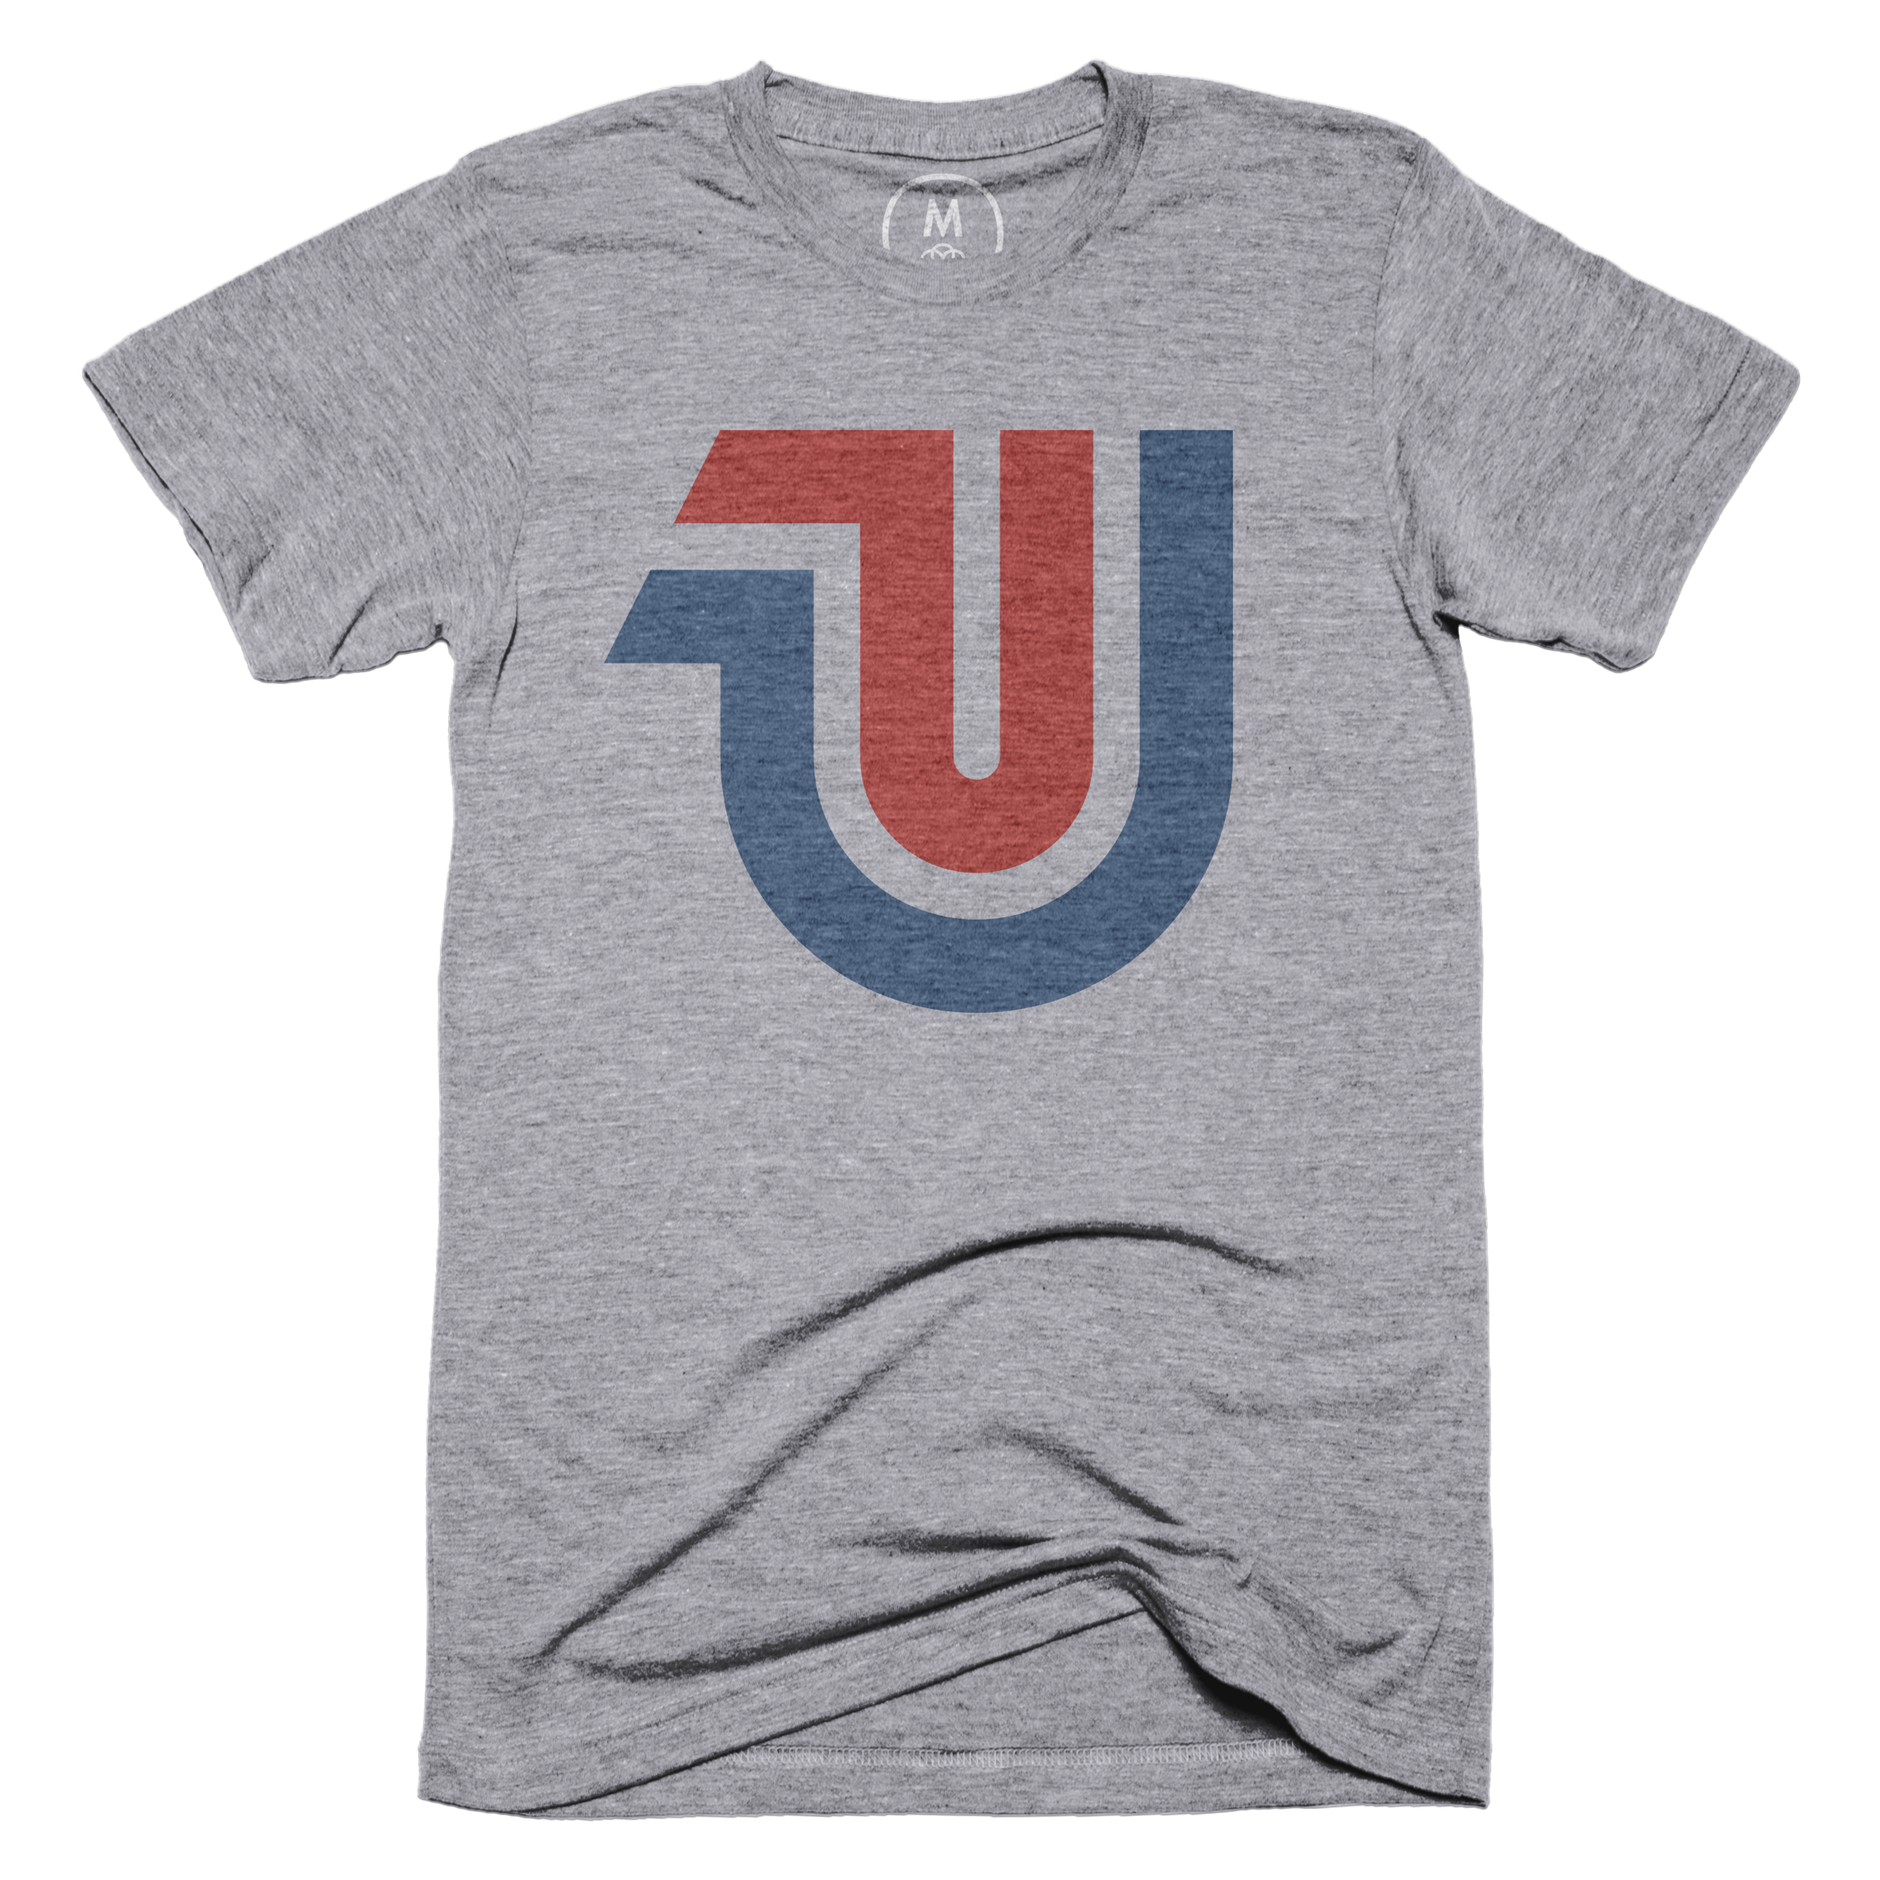 STANDARD ISSUE - United Pixelworkers T-Shirt from Cotton Bureau